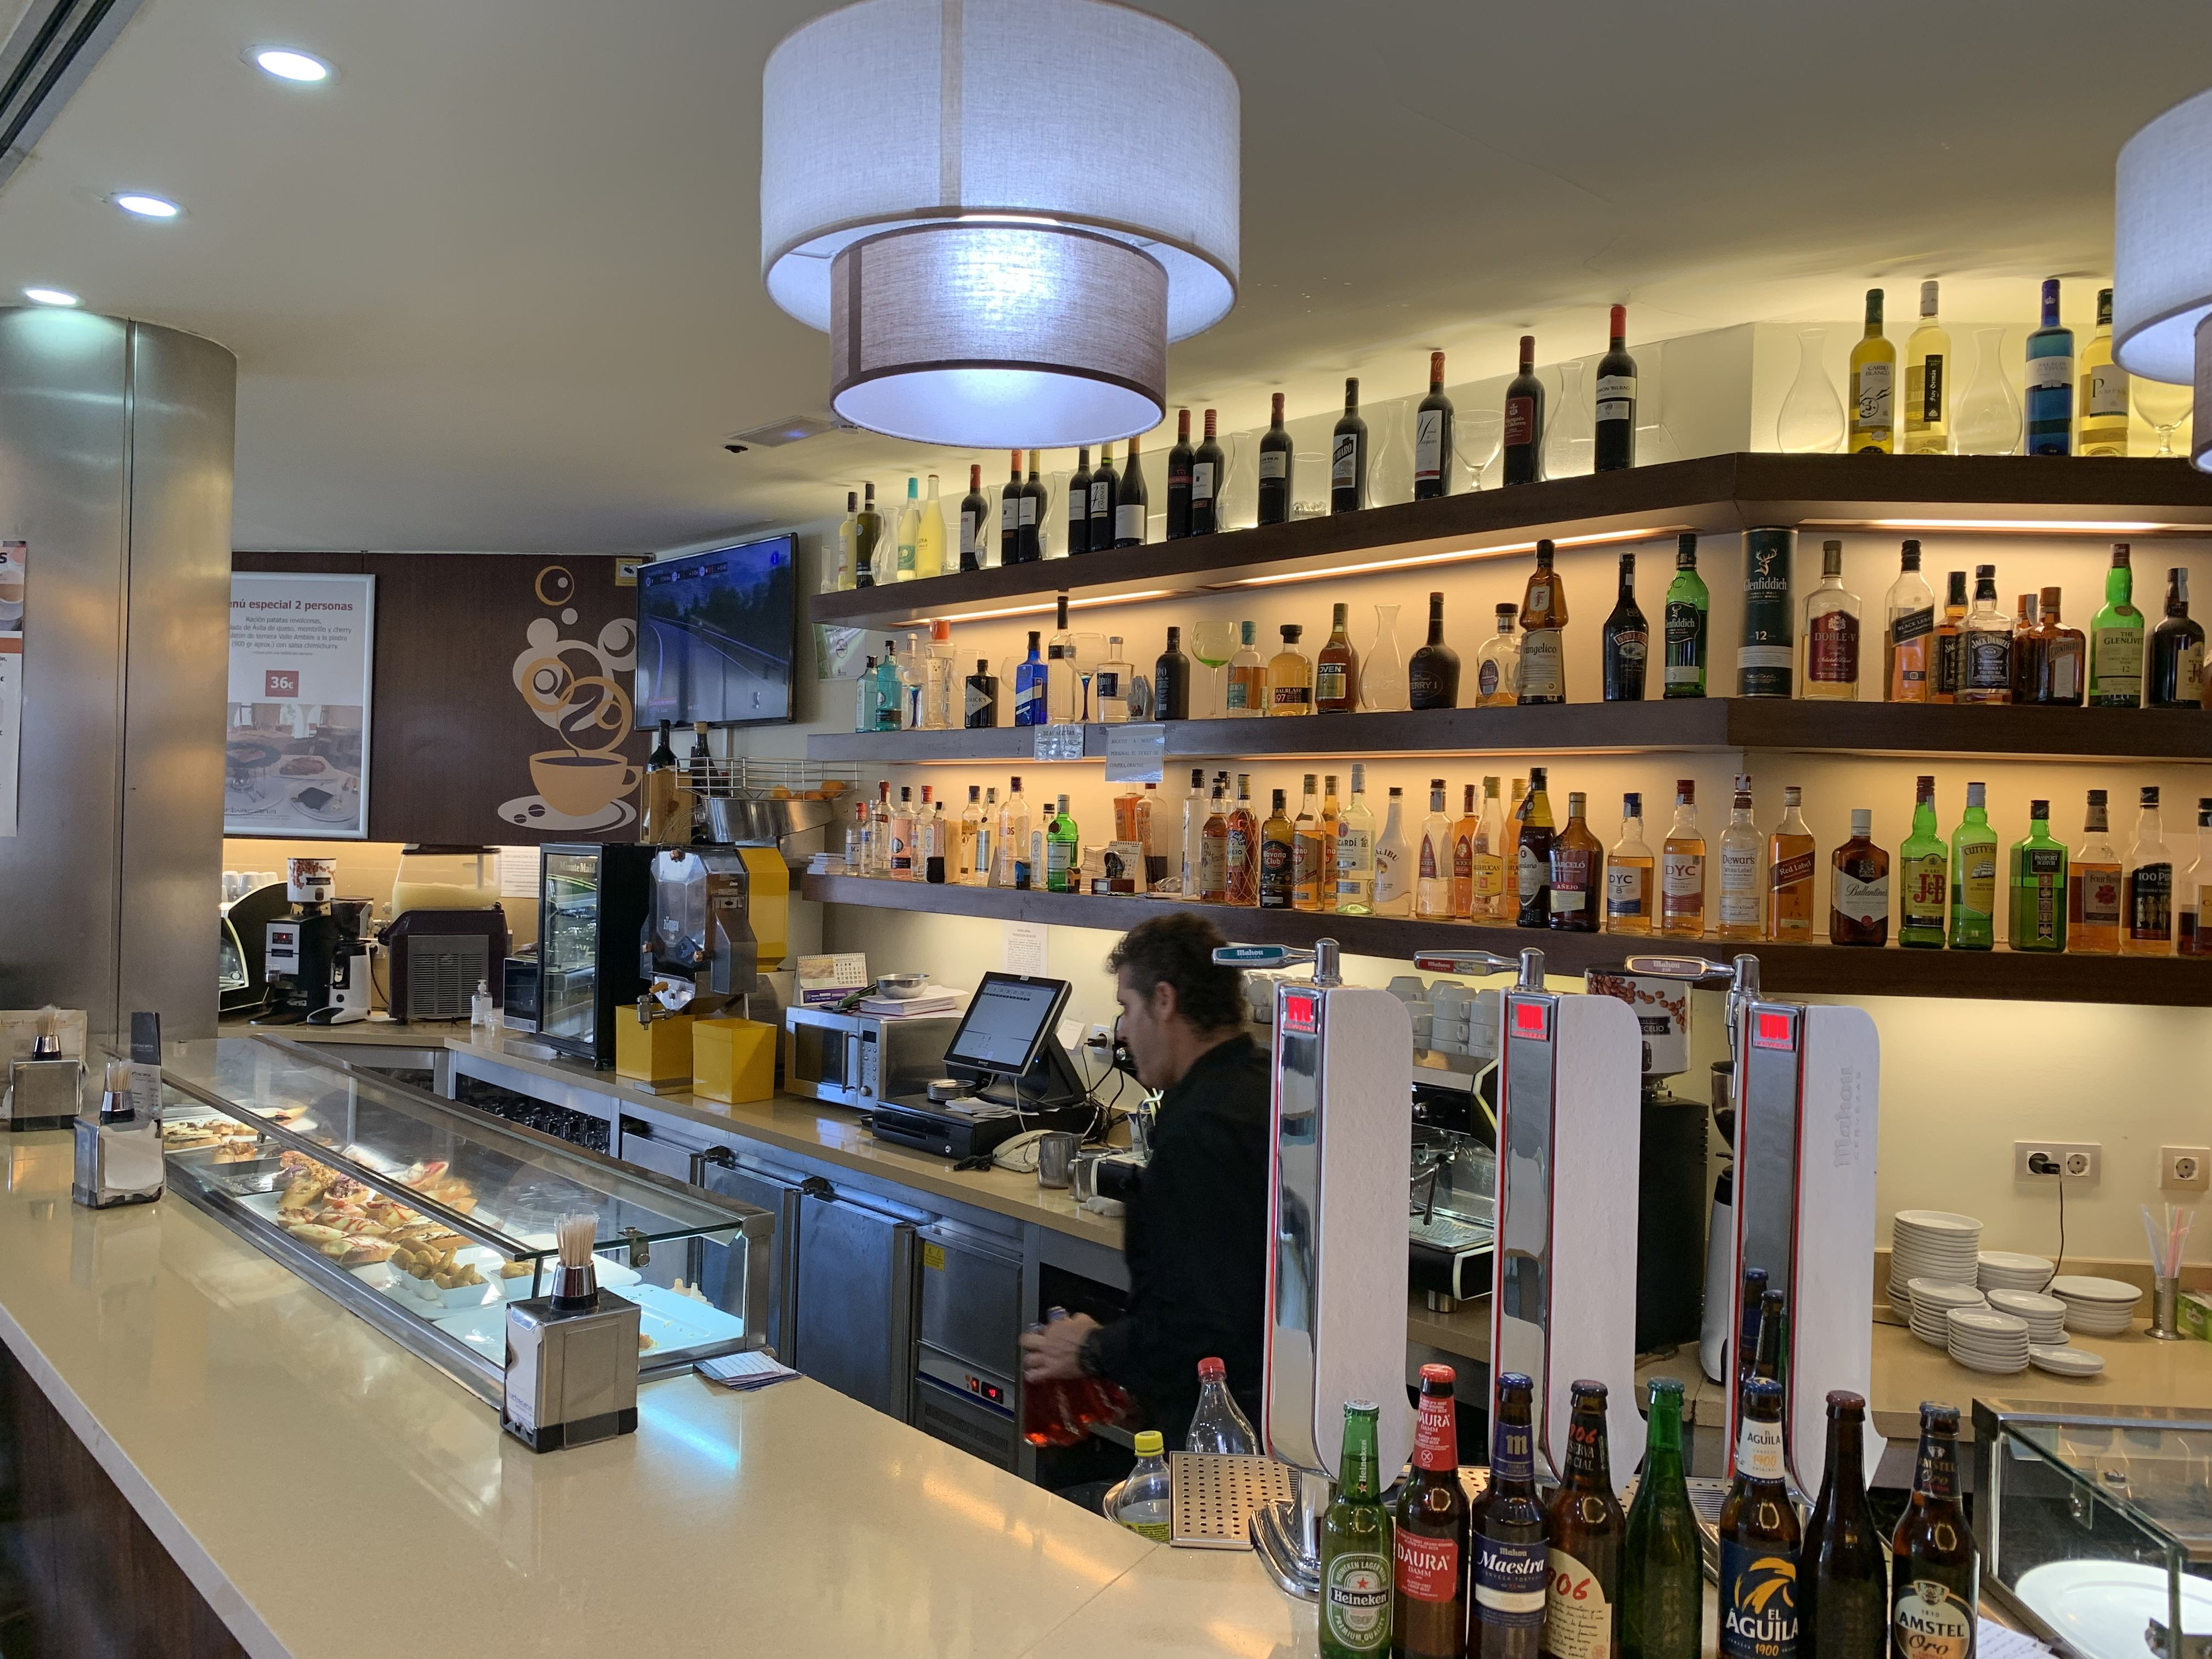 Bar - restaurante en Ávila